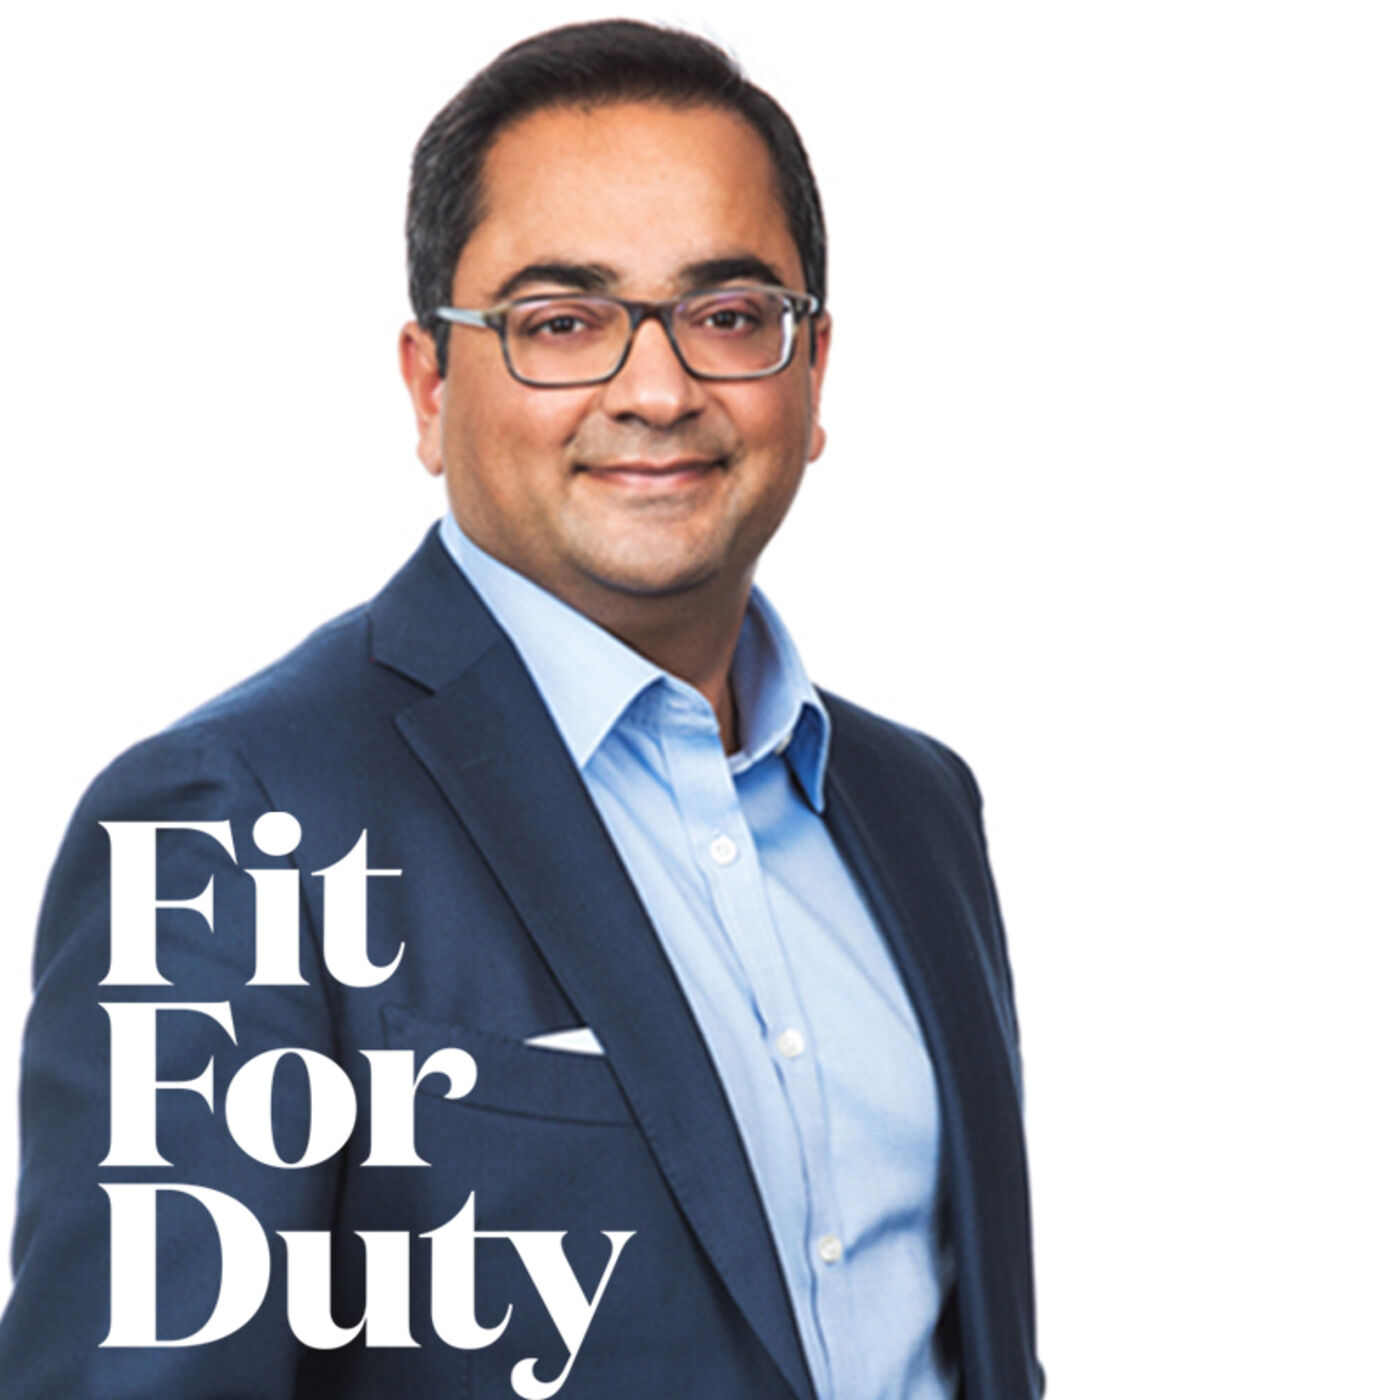 Fit for Duty 7 - Mental health in the time of Covid-19 and beyond